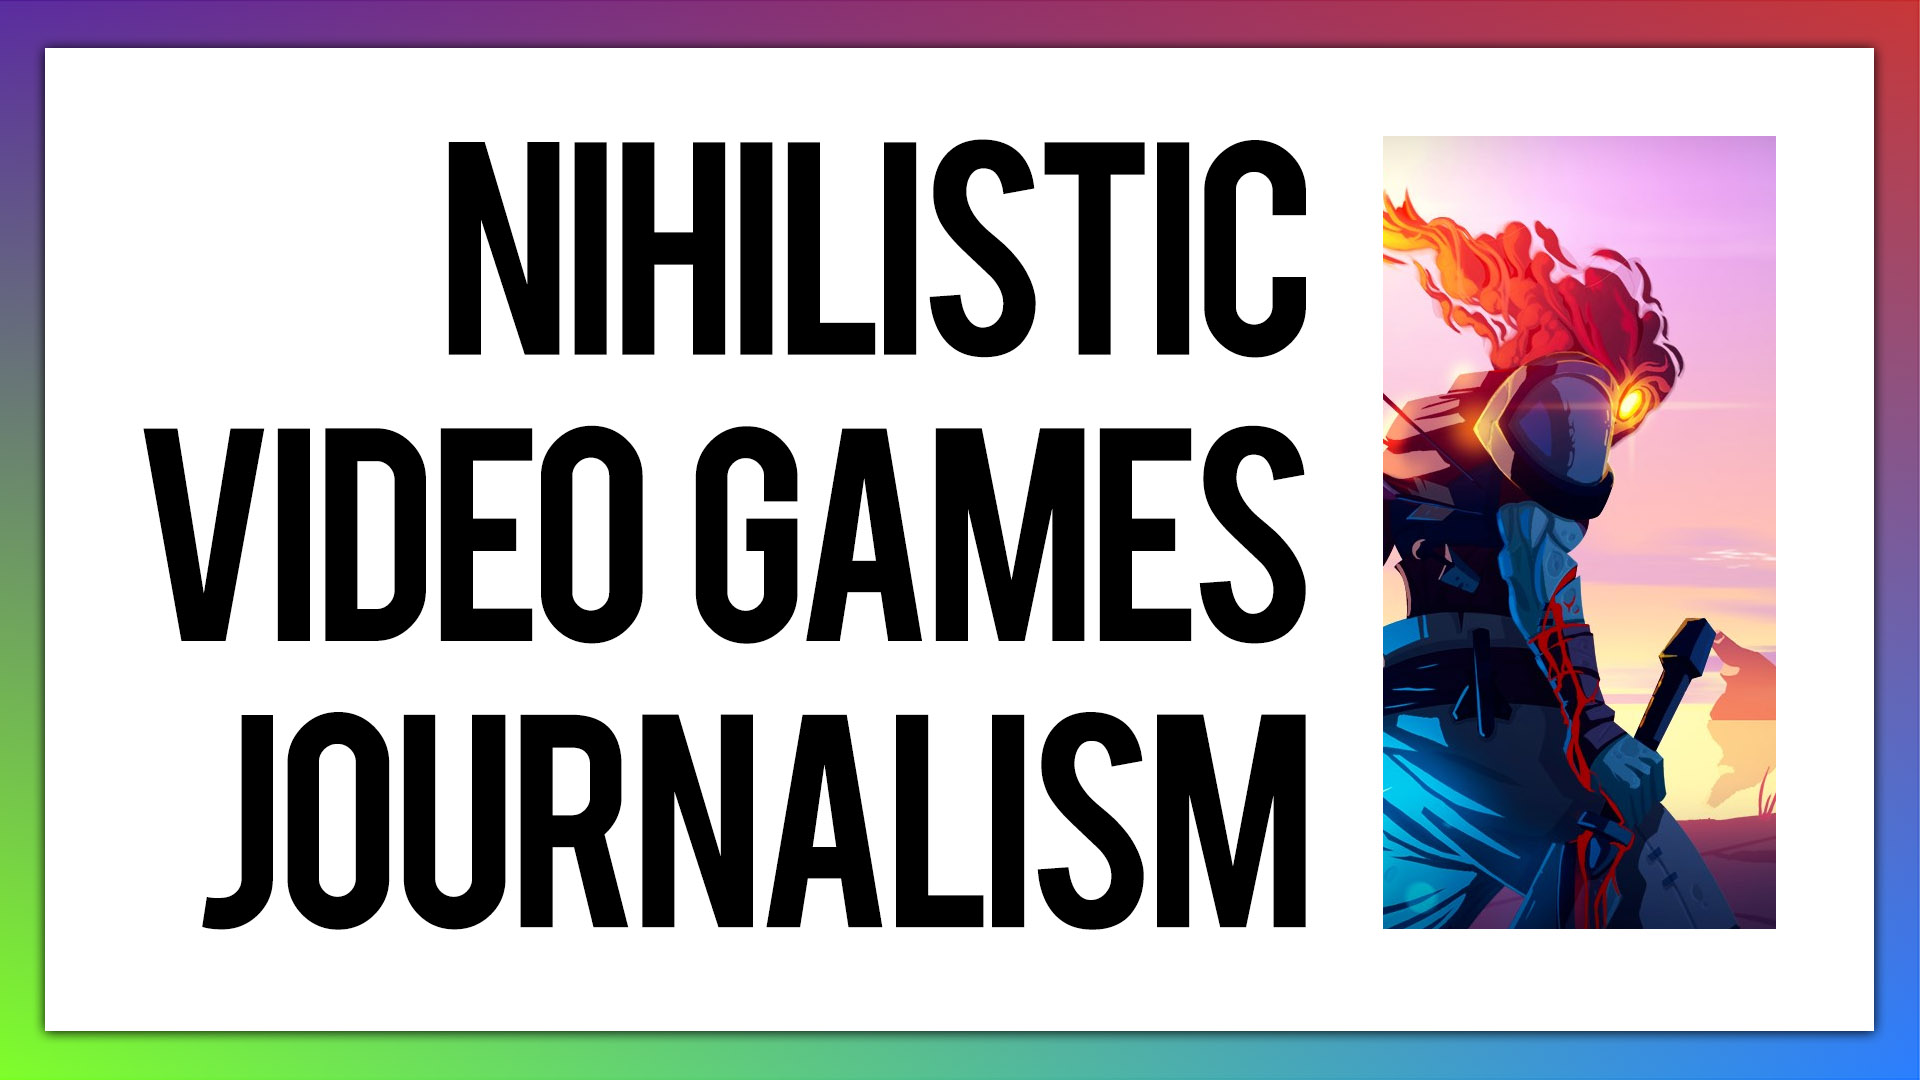 The Nihilistic Attacks on the Values of the Video Games Industry